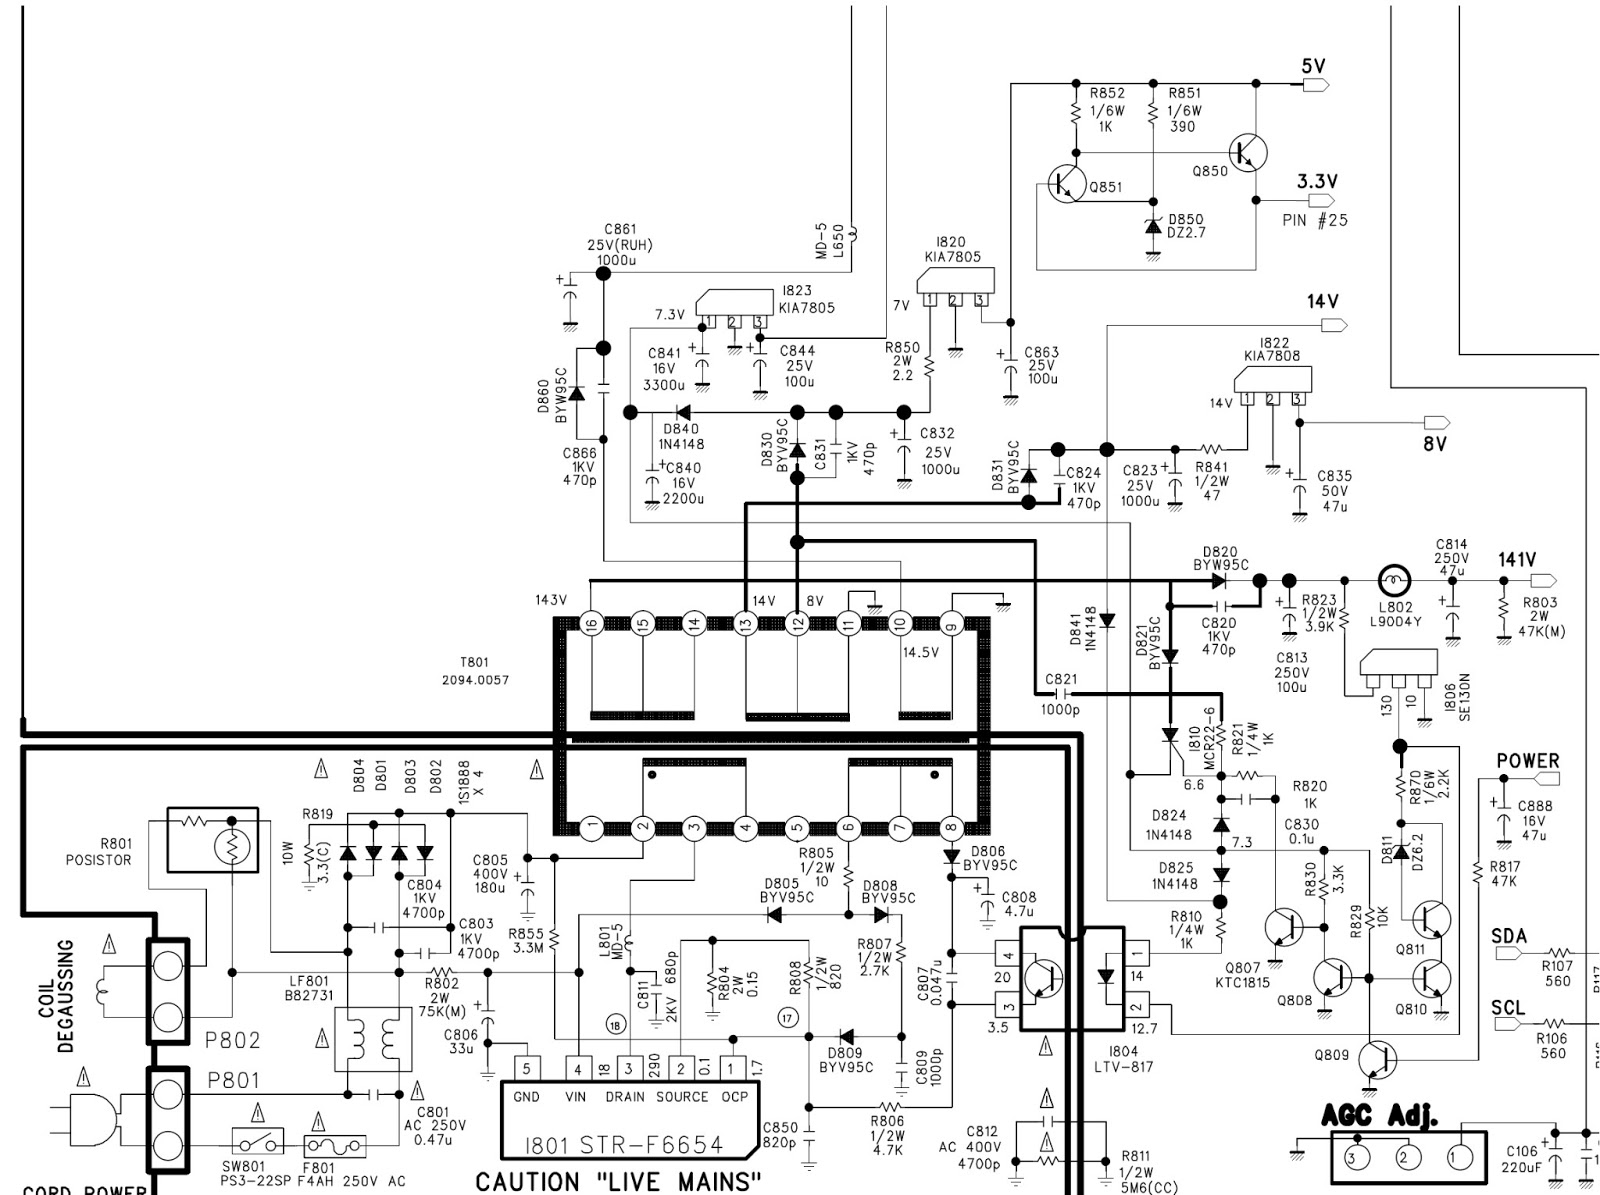 medium resolution of str f6654 based smps power supply schematic diagram daewoo dsc 3210 tv based circuit